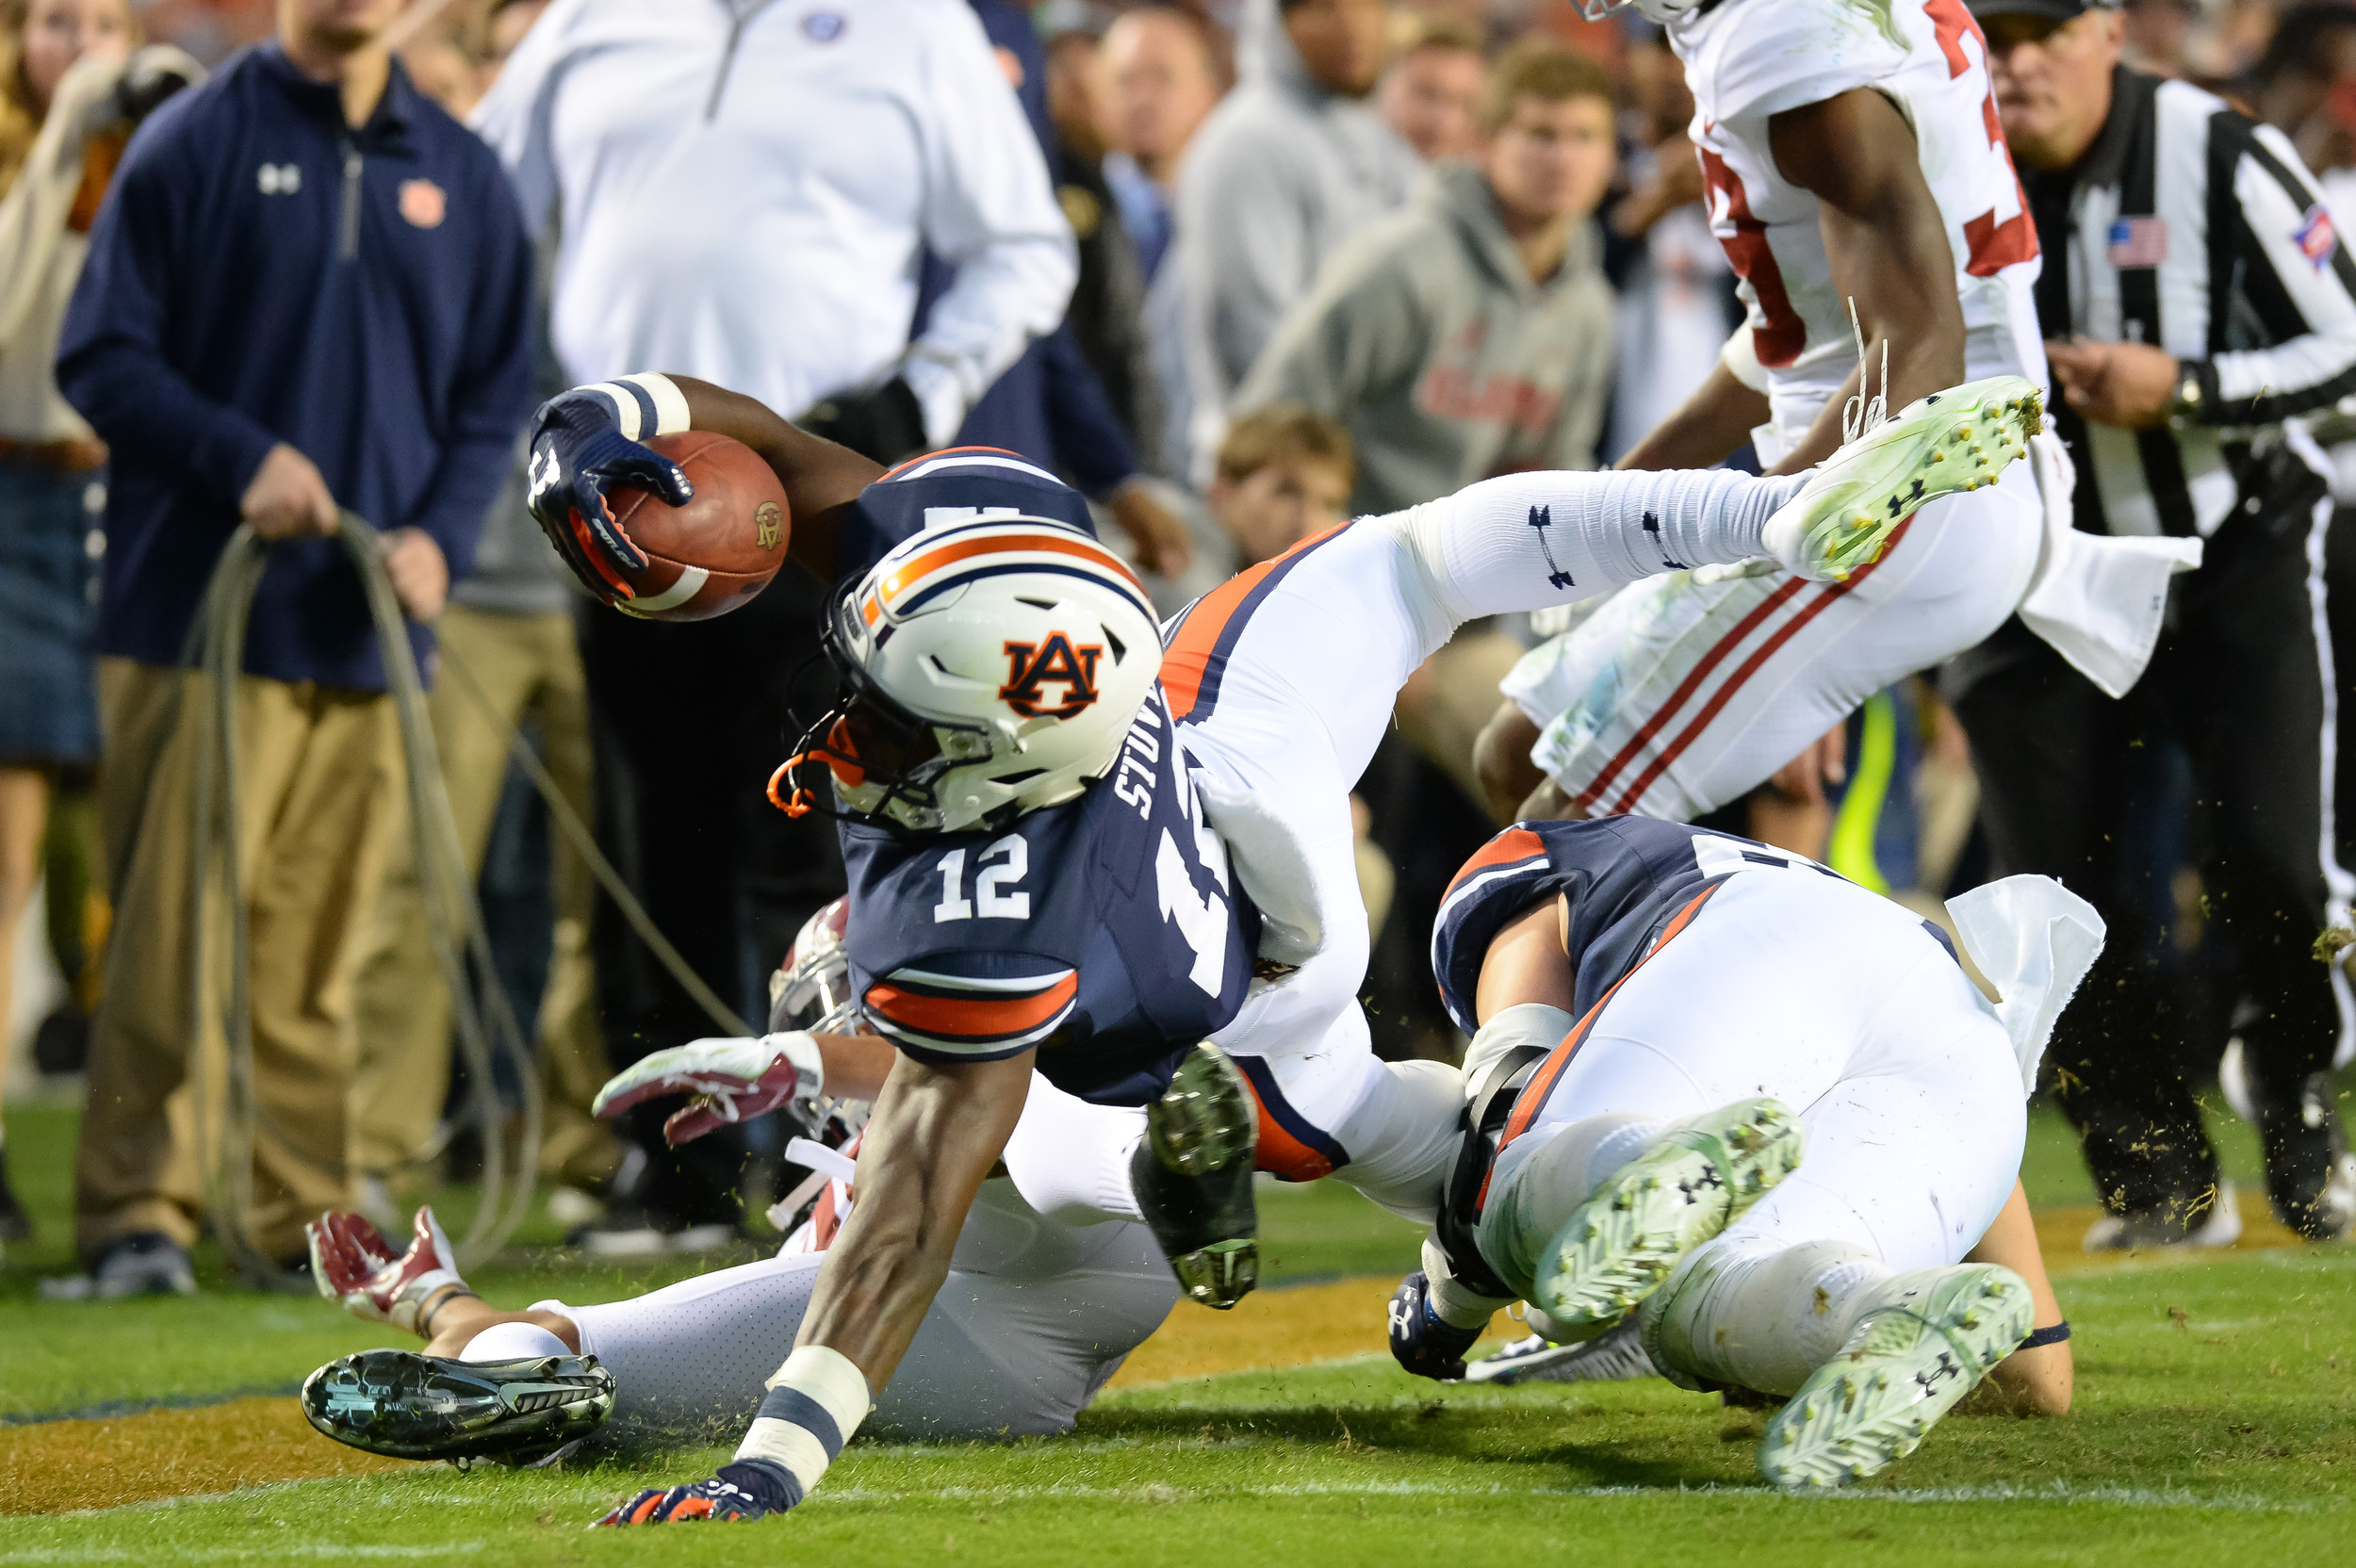 Auburn Tigers wide receiver Eli Stove (12) stretches for extra yardage over Alabama Crimson Tide linebacker Shaun Dion Hamilton (20) during the second half of Saturday's game, at Jordan-Hare Stadium.